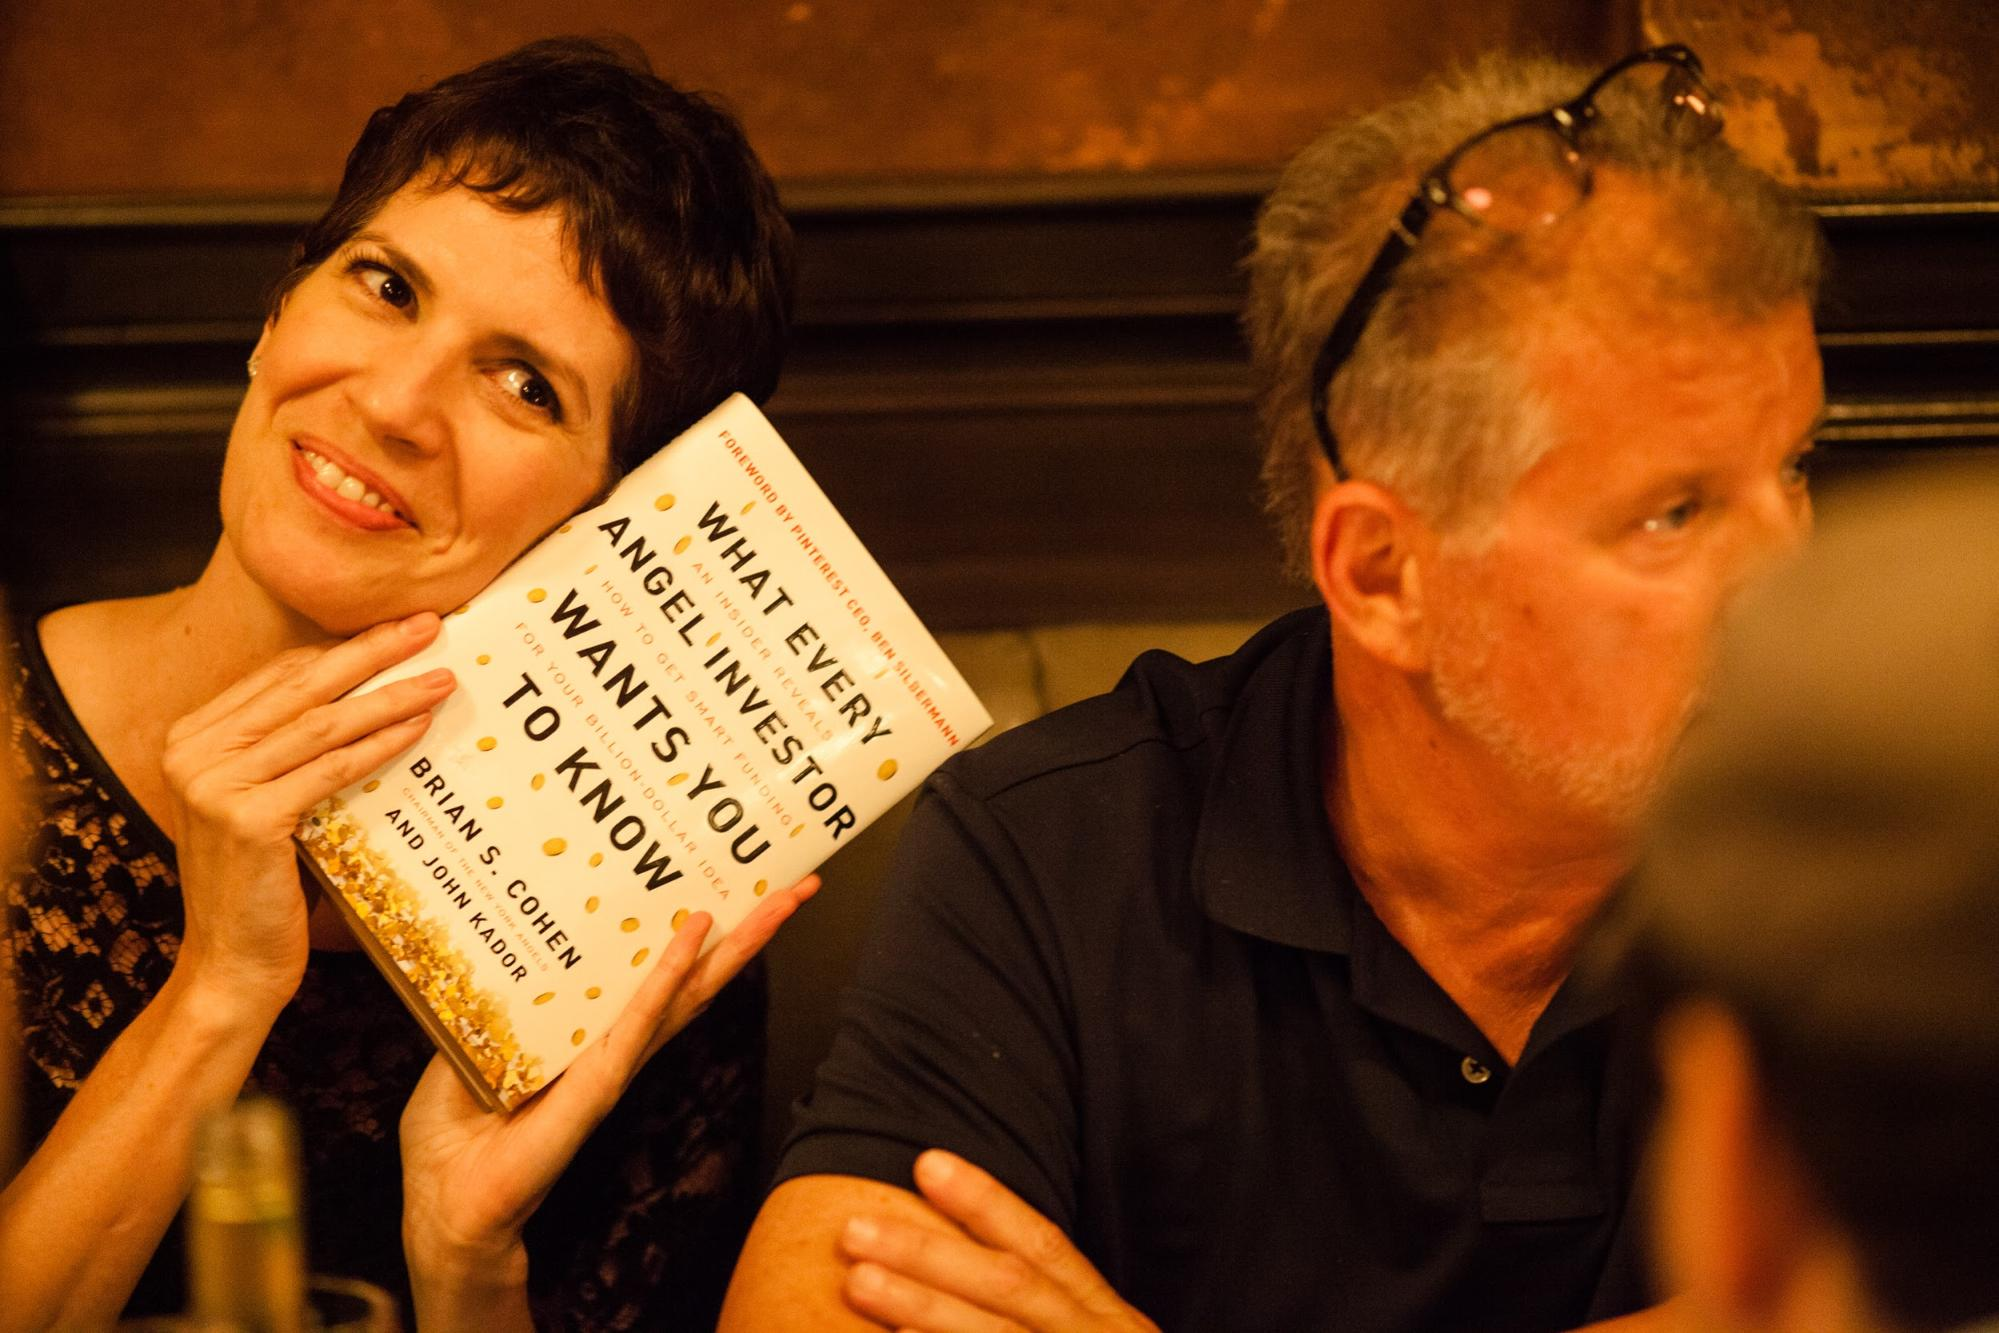 Kelly Hoey and Brian Cohen at our LDV Community Dinner, July 2015 ©Robert Wright